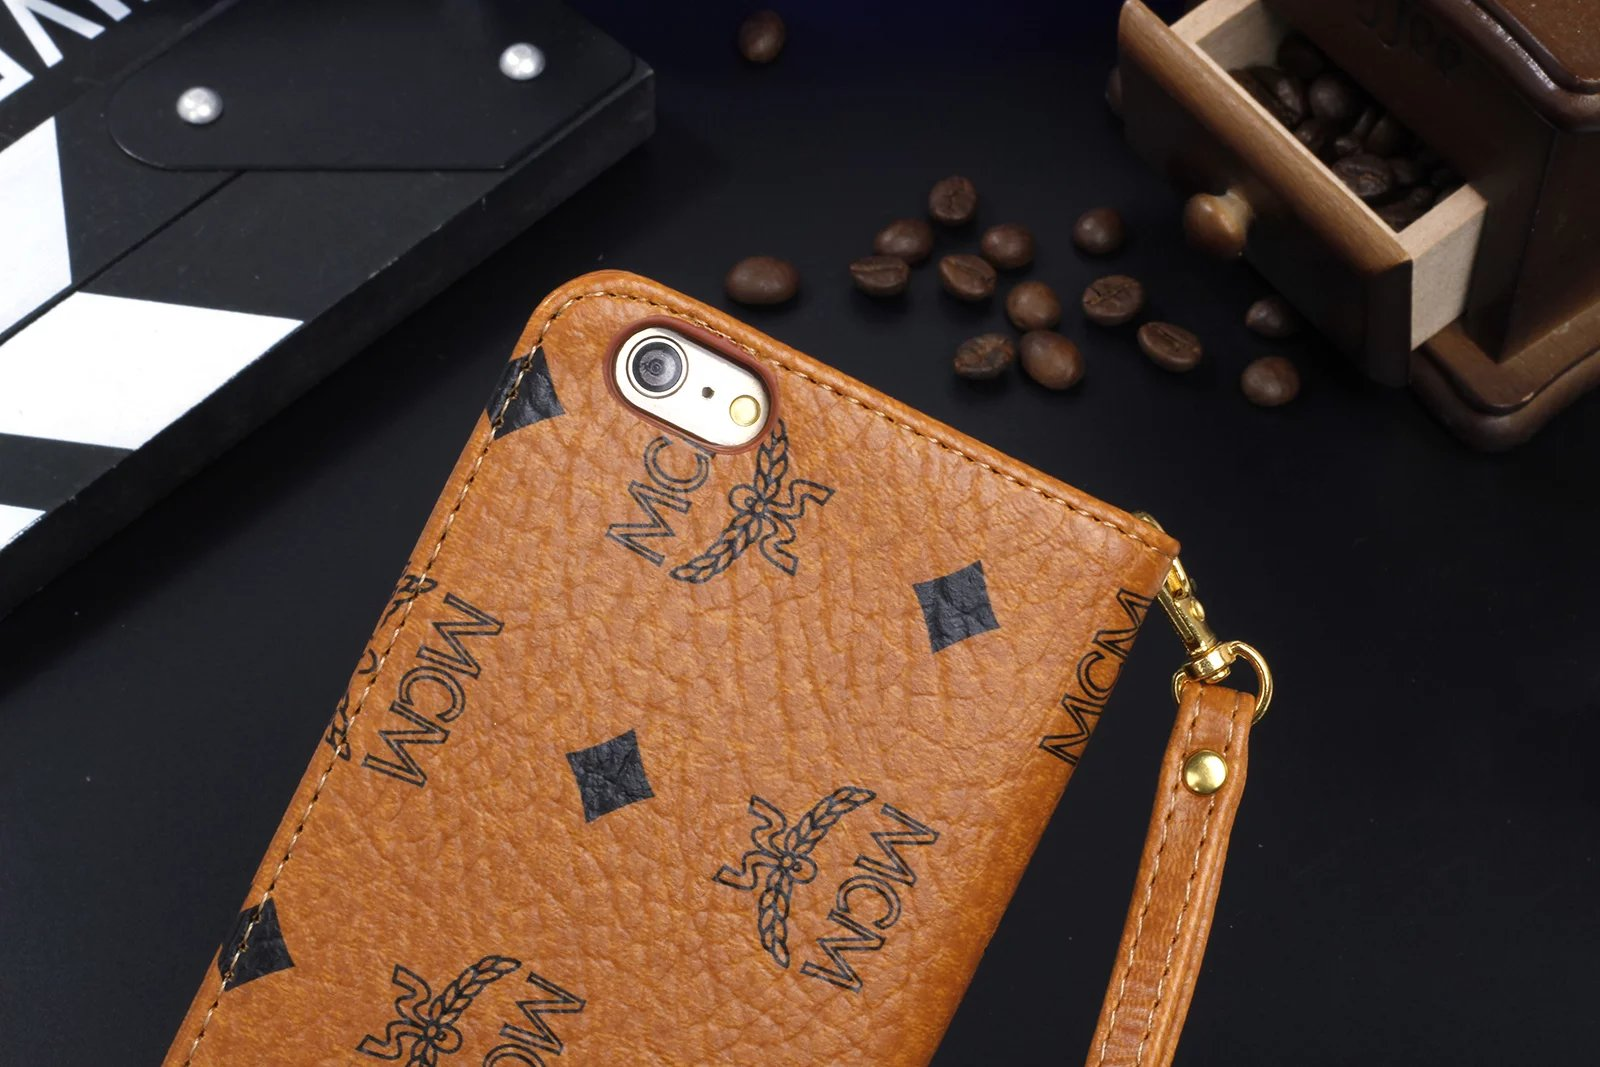 iphone 6 Plus covers and cases cover case iphone 6 Plus fashion iphone6 plus case good cases for iphone 6 apple 6 phone cover iphone 6 covers uk best case for the iphone 6 designer iphone accessories iphone 6 fashion cases